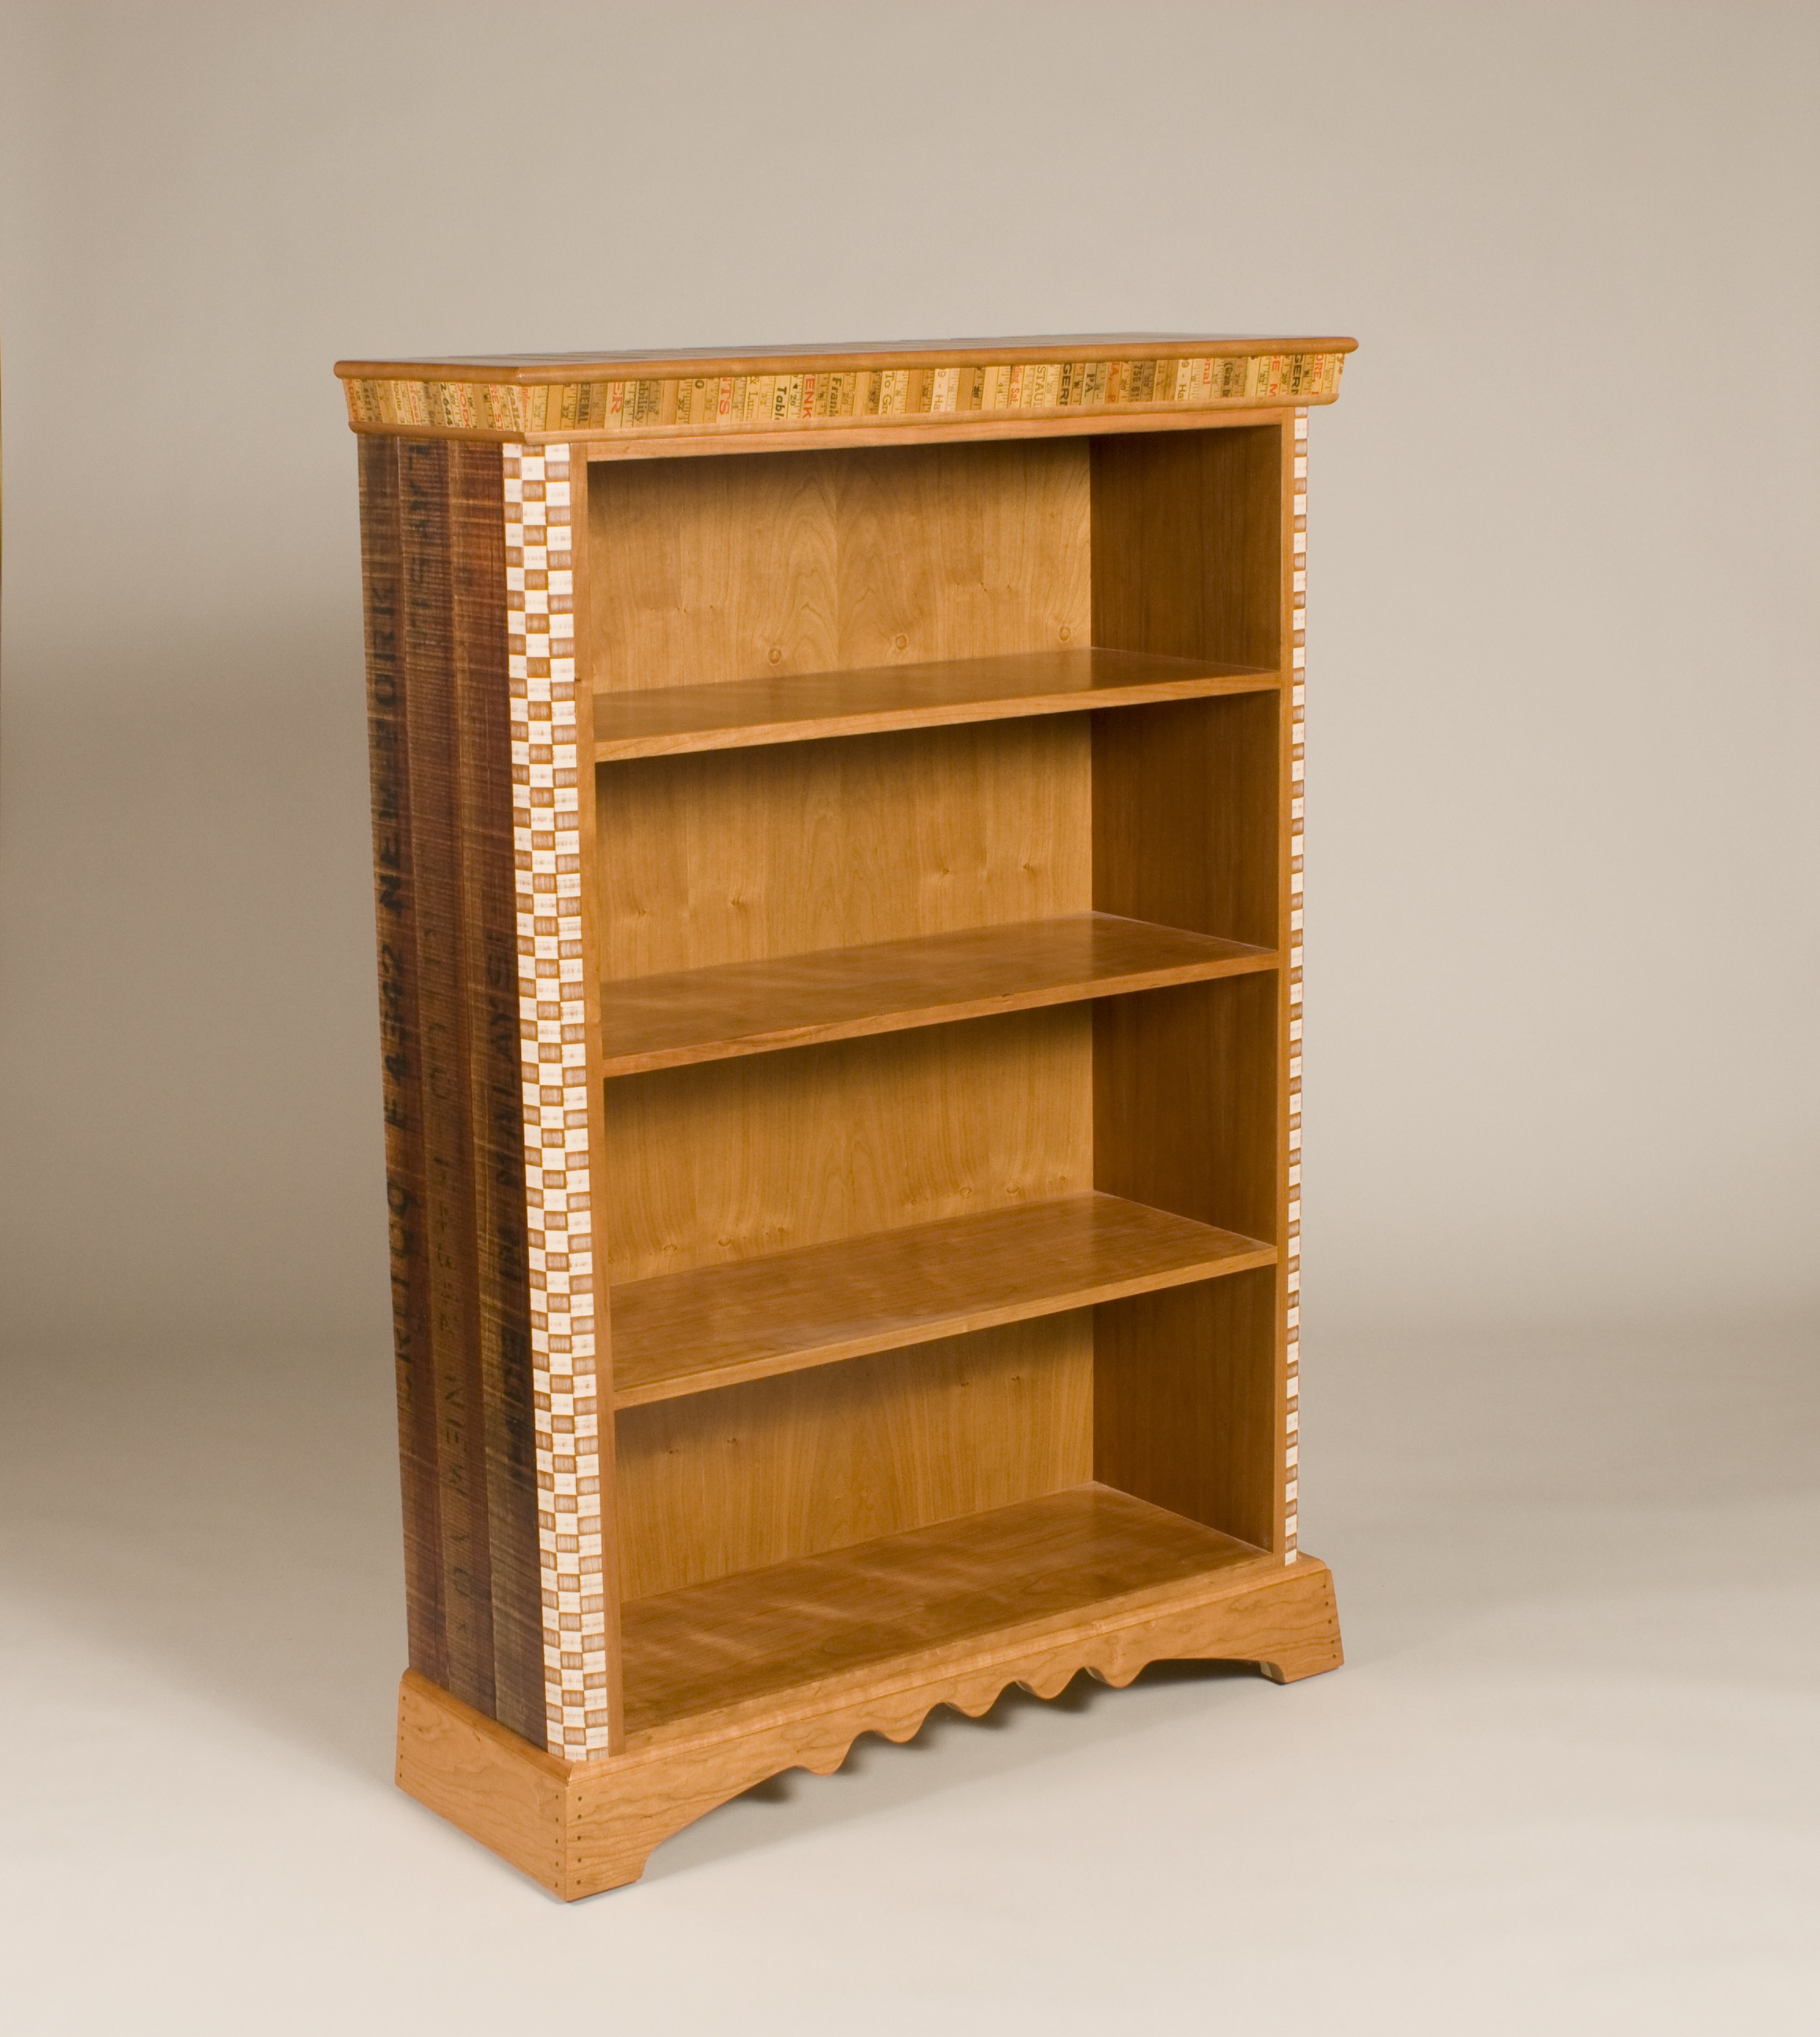 bookcase-rulers-006.jpg